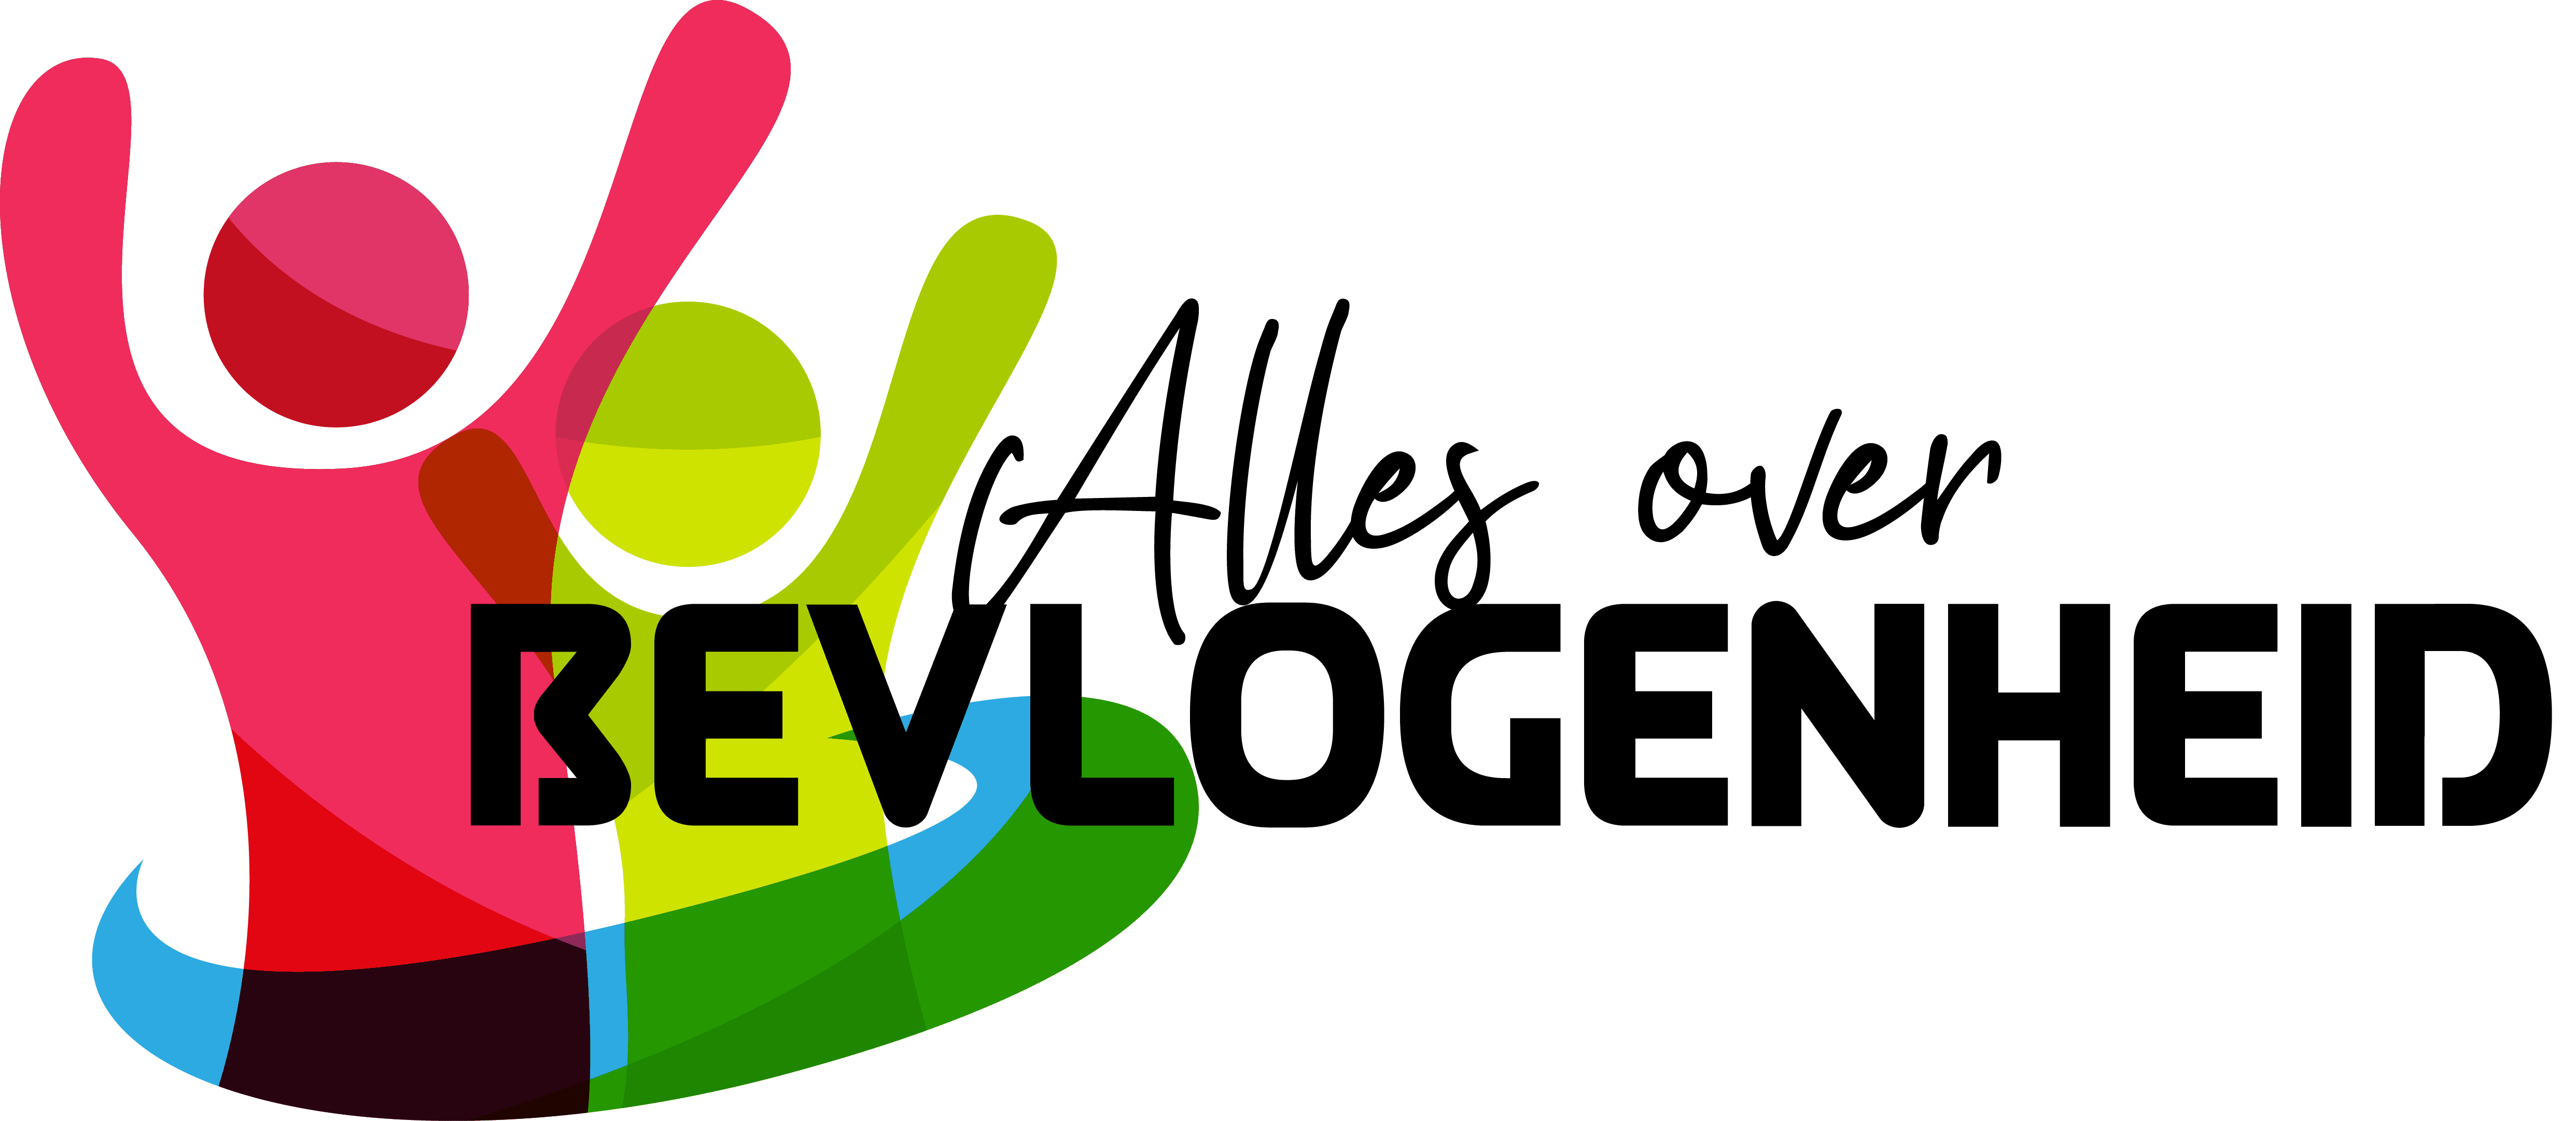 Alles over bevlogenheid